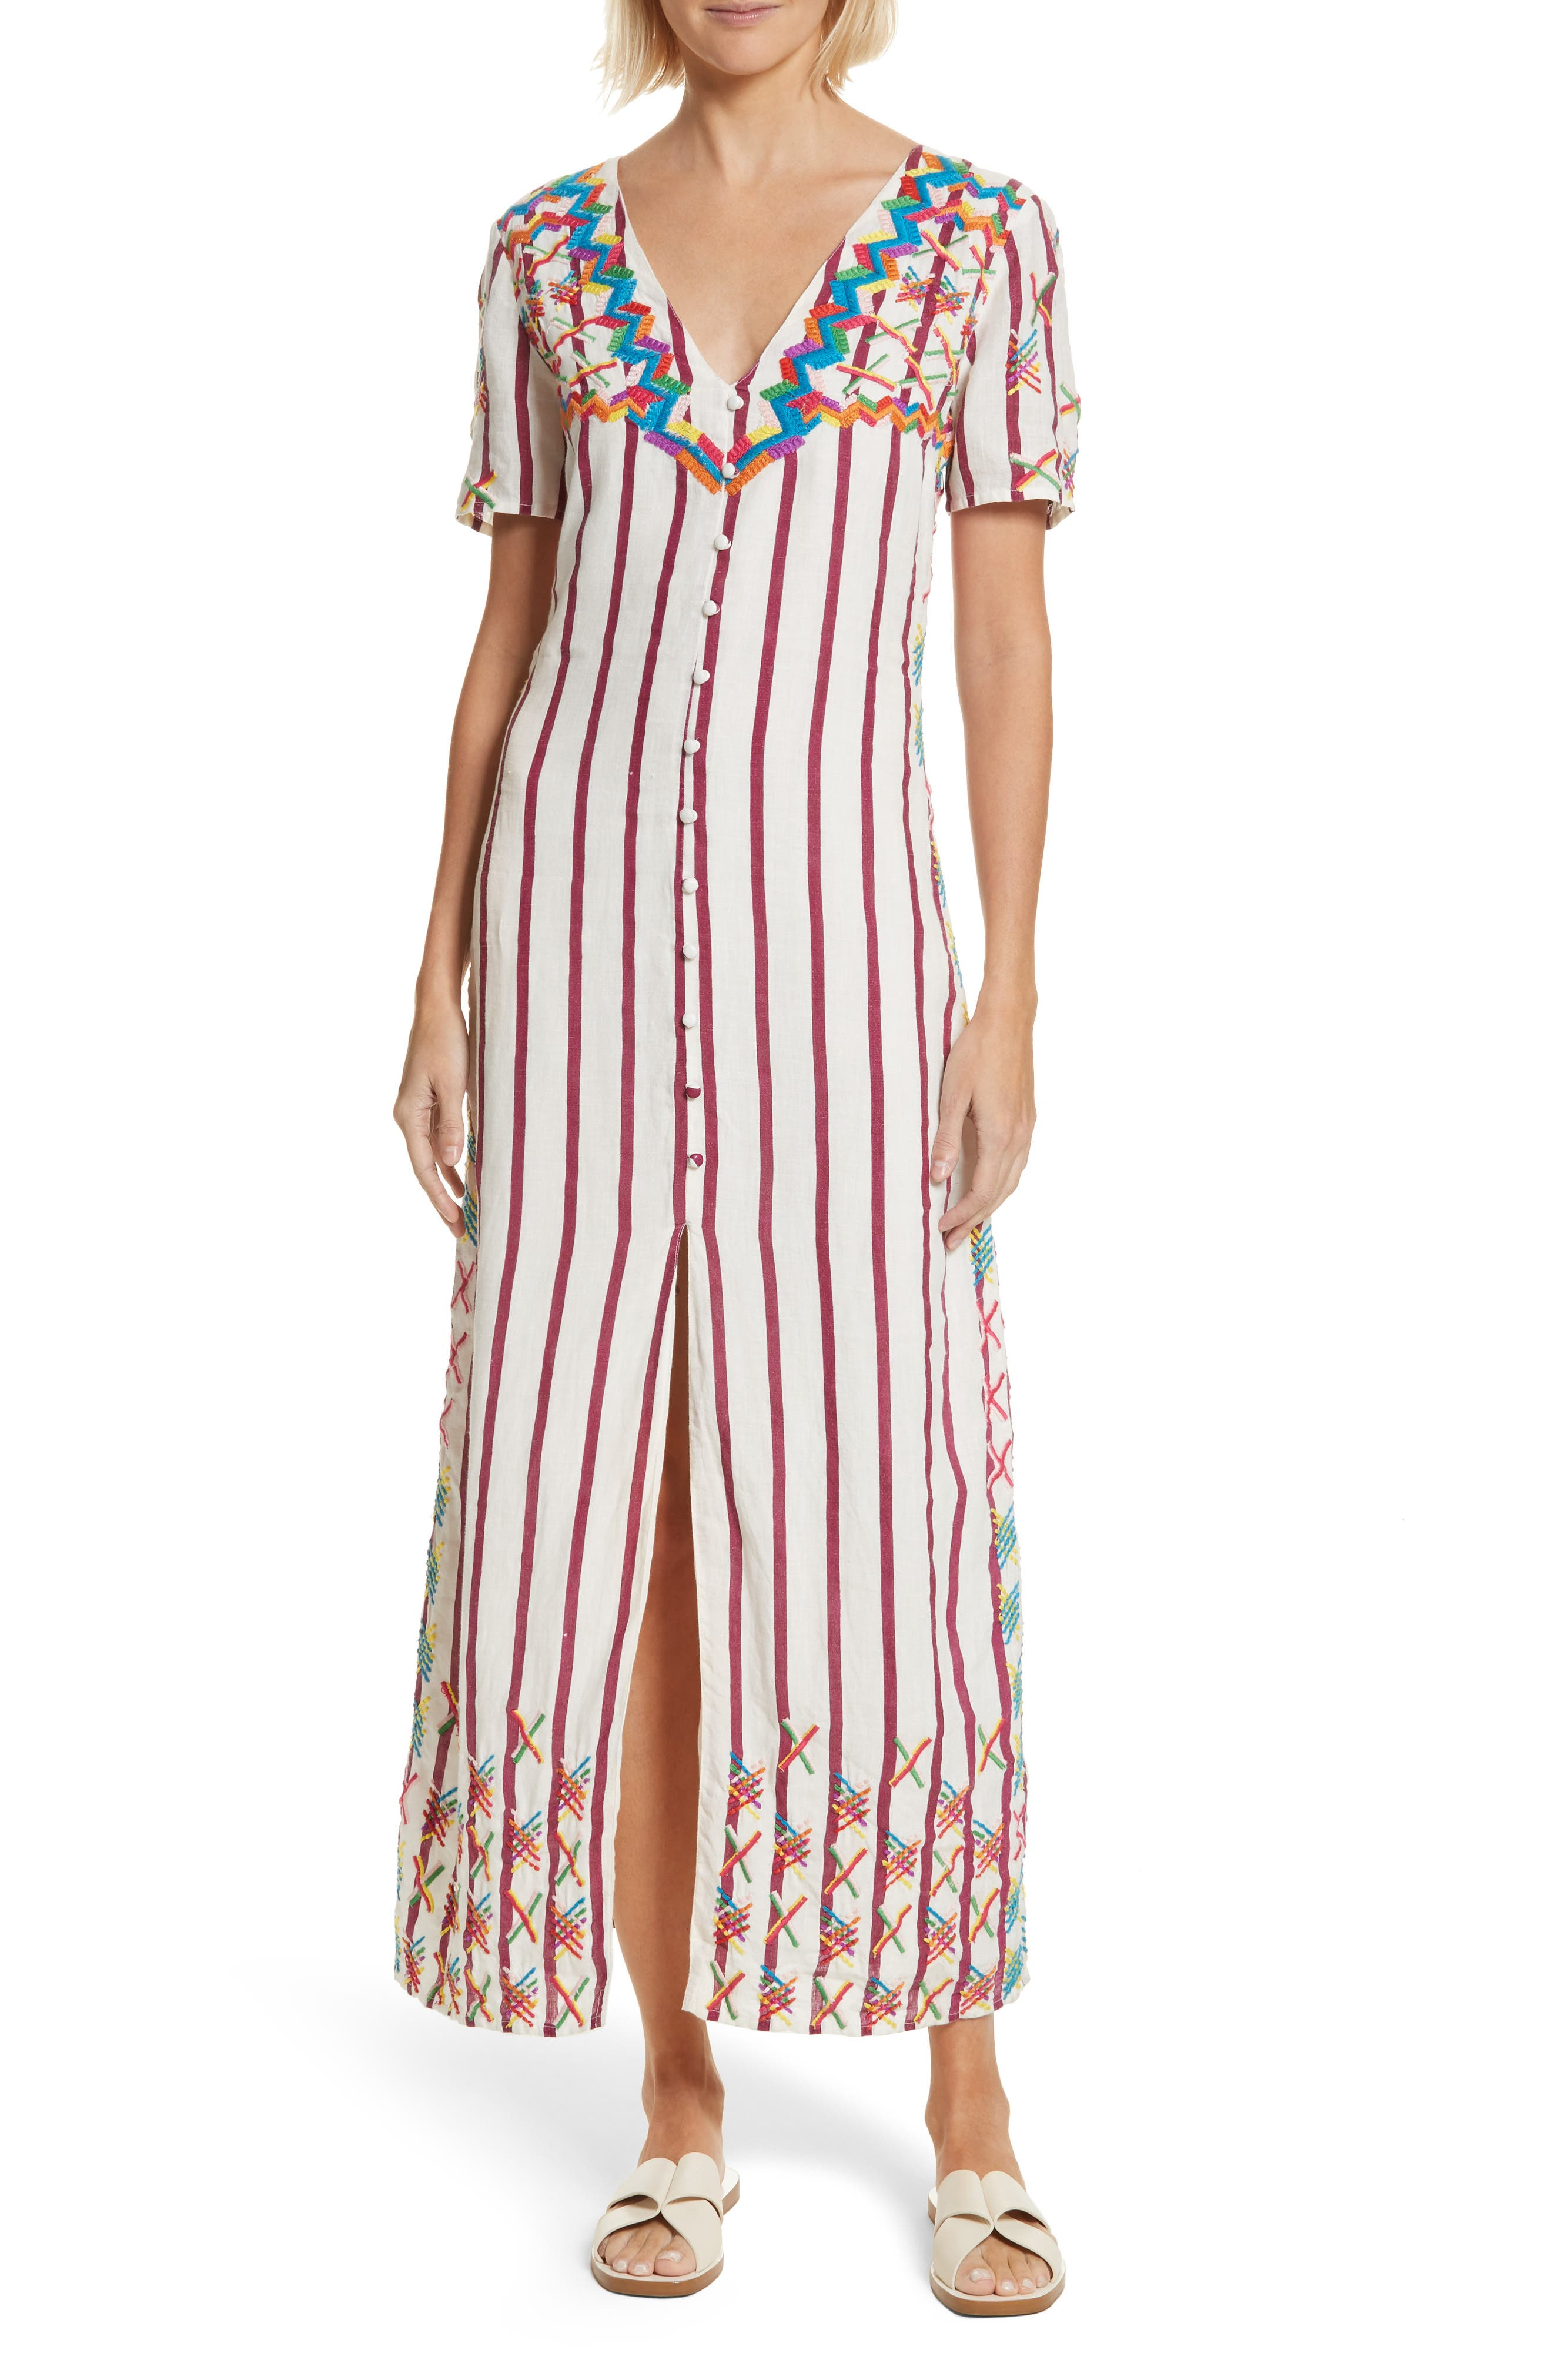 Maria Embroidered Maxi Dress,                             Main thumbnail 1, color,                             Off White/ Burgundy